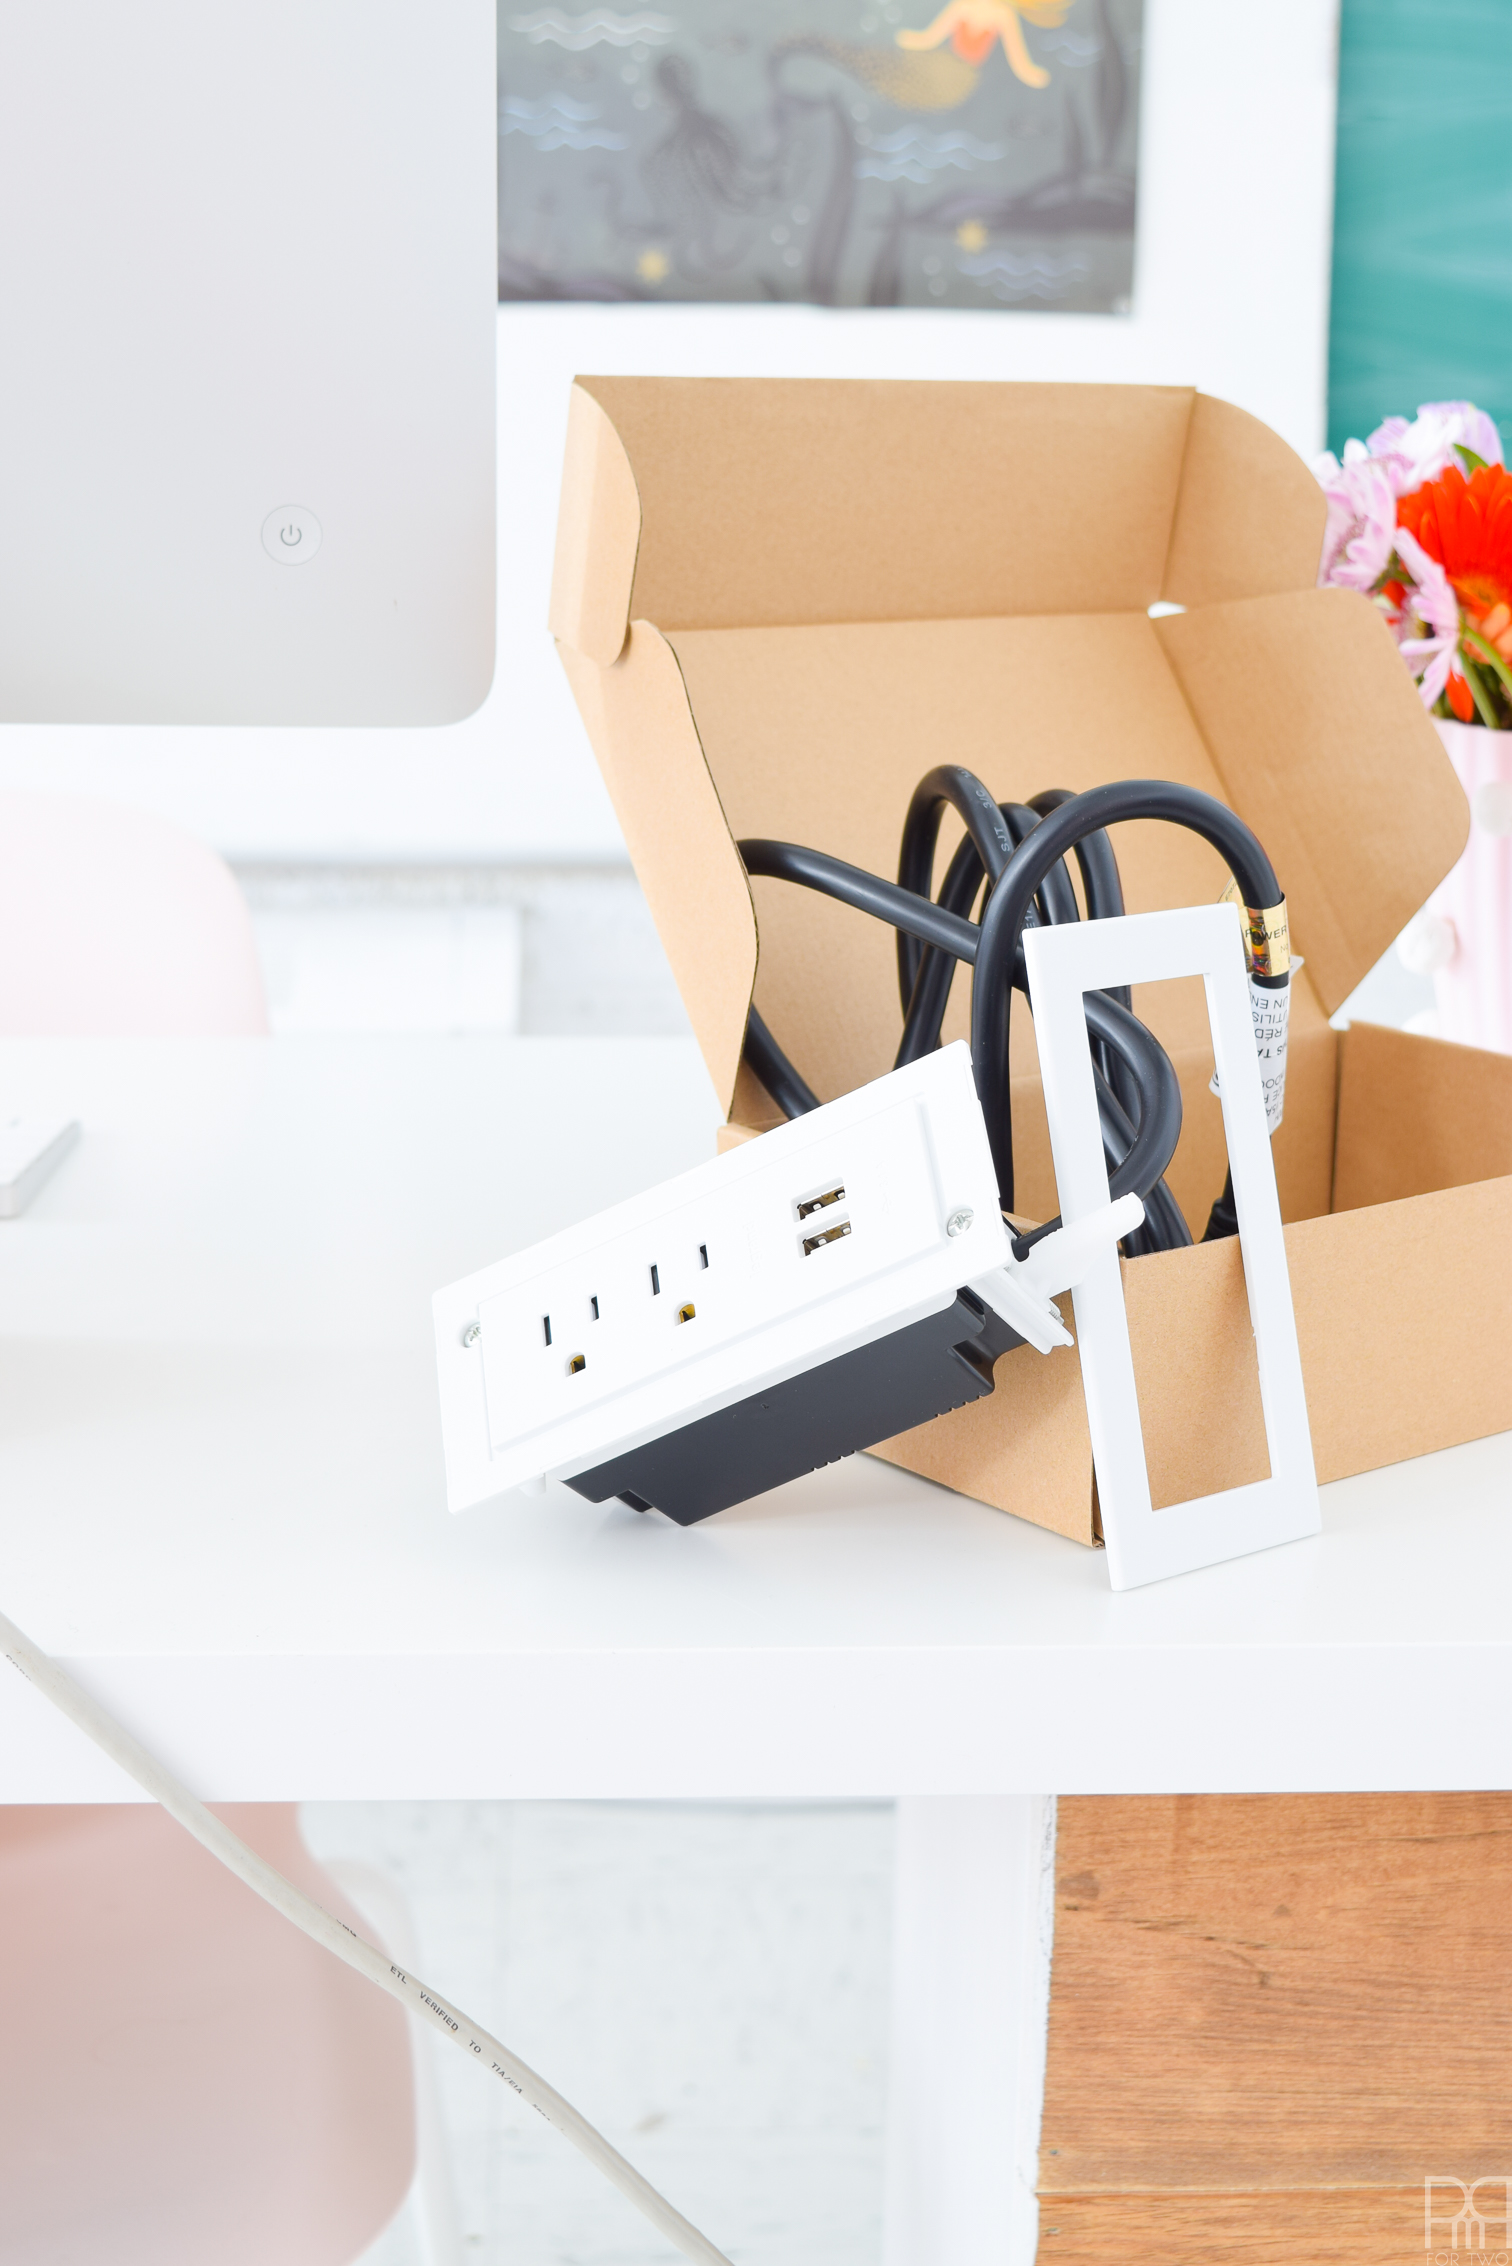 Looking for a solution to the power cord jumble at your desk? Try an in-furniture power unit! Legrand makes an easy to install and stylish model with USB plugs. You can't ask for much more in desktop solutions.